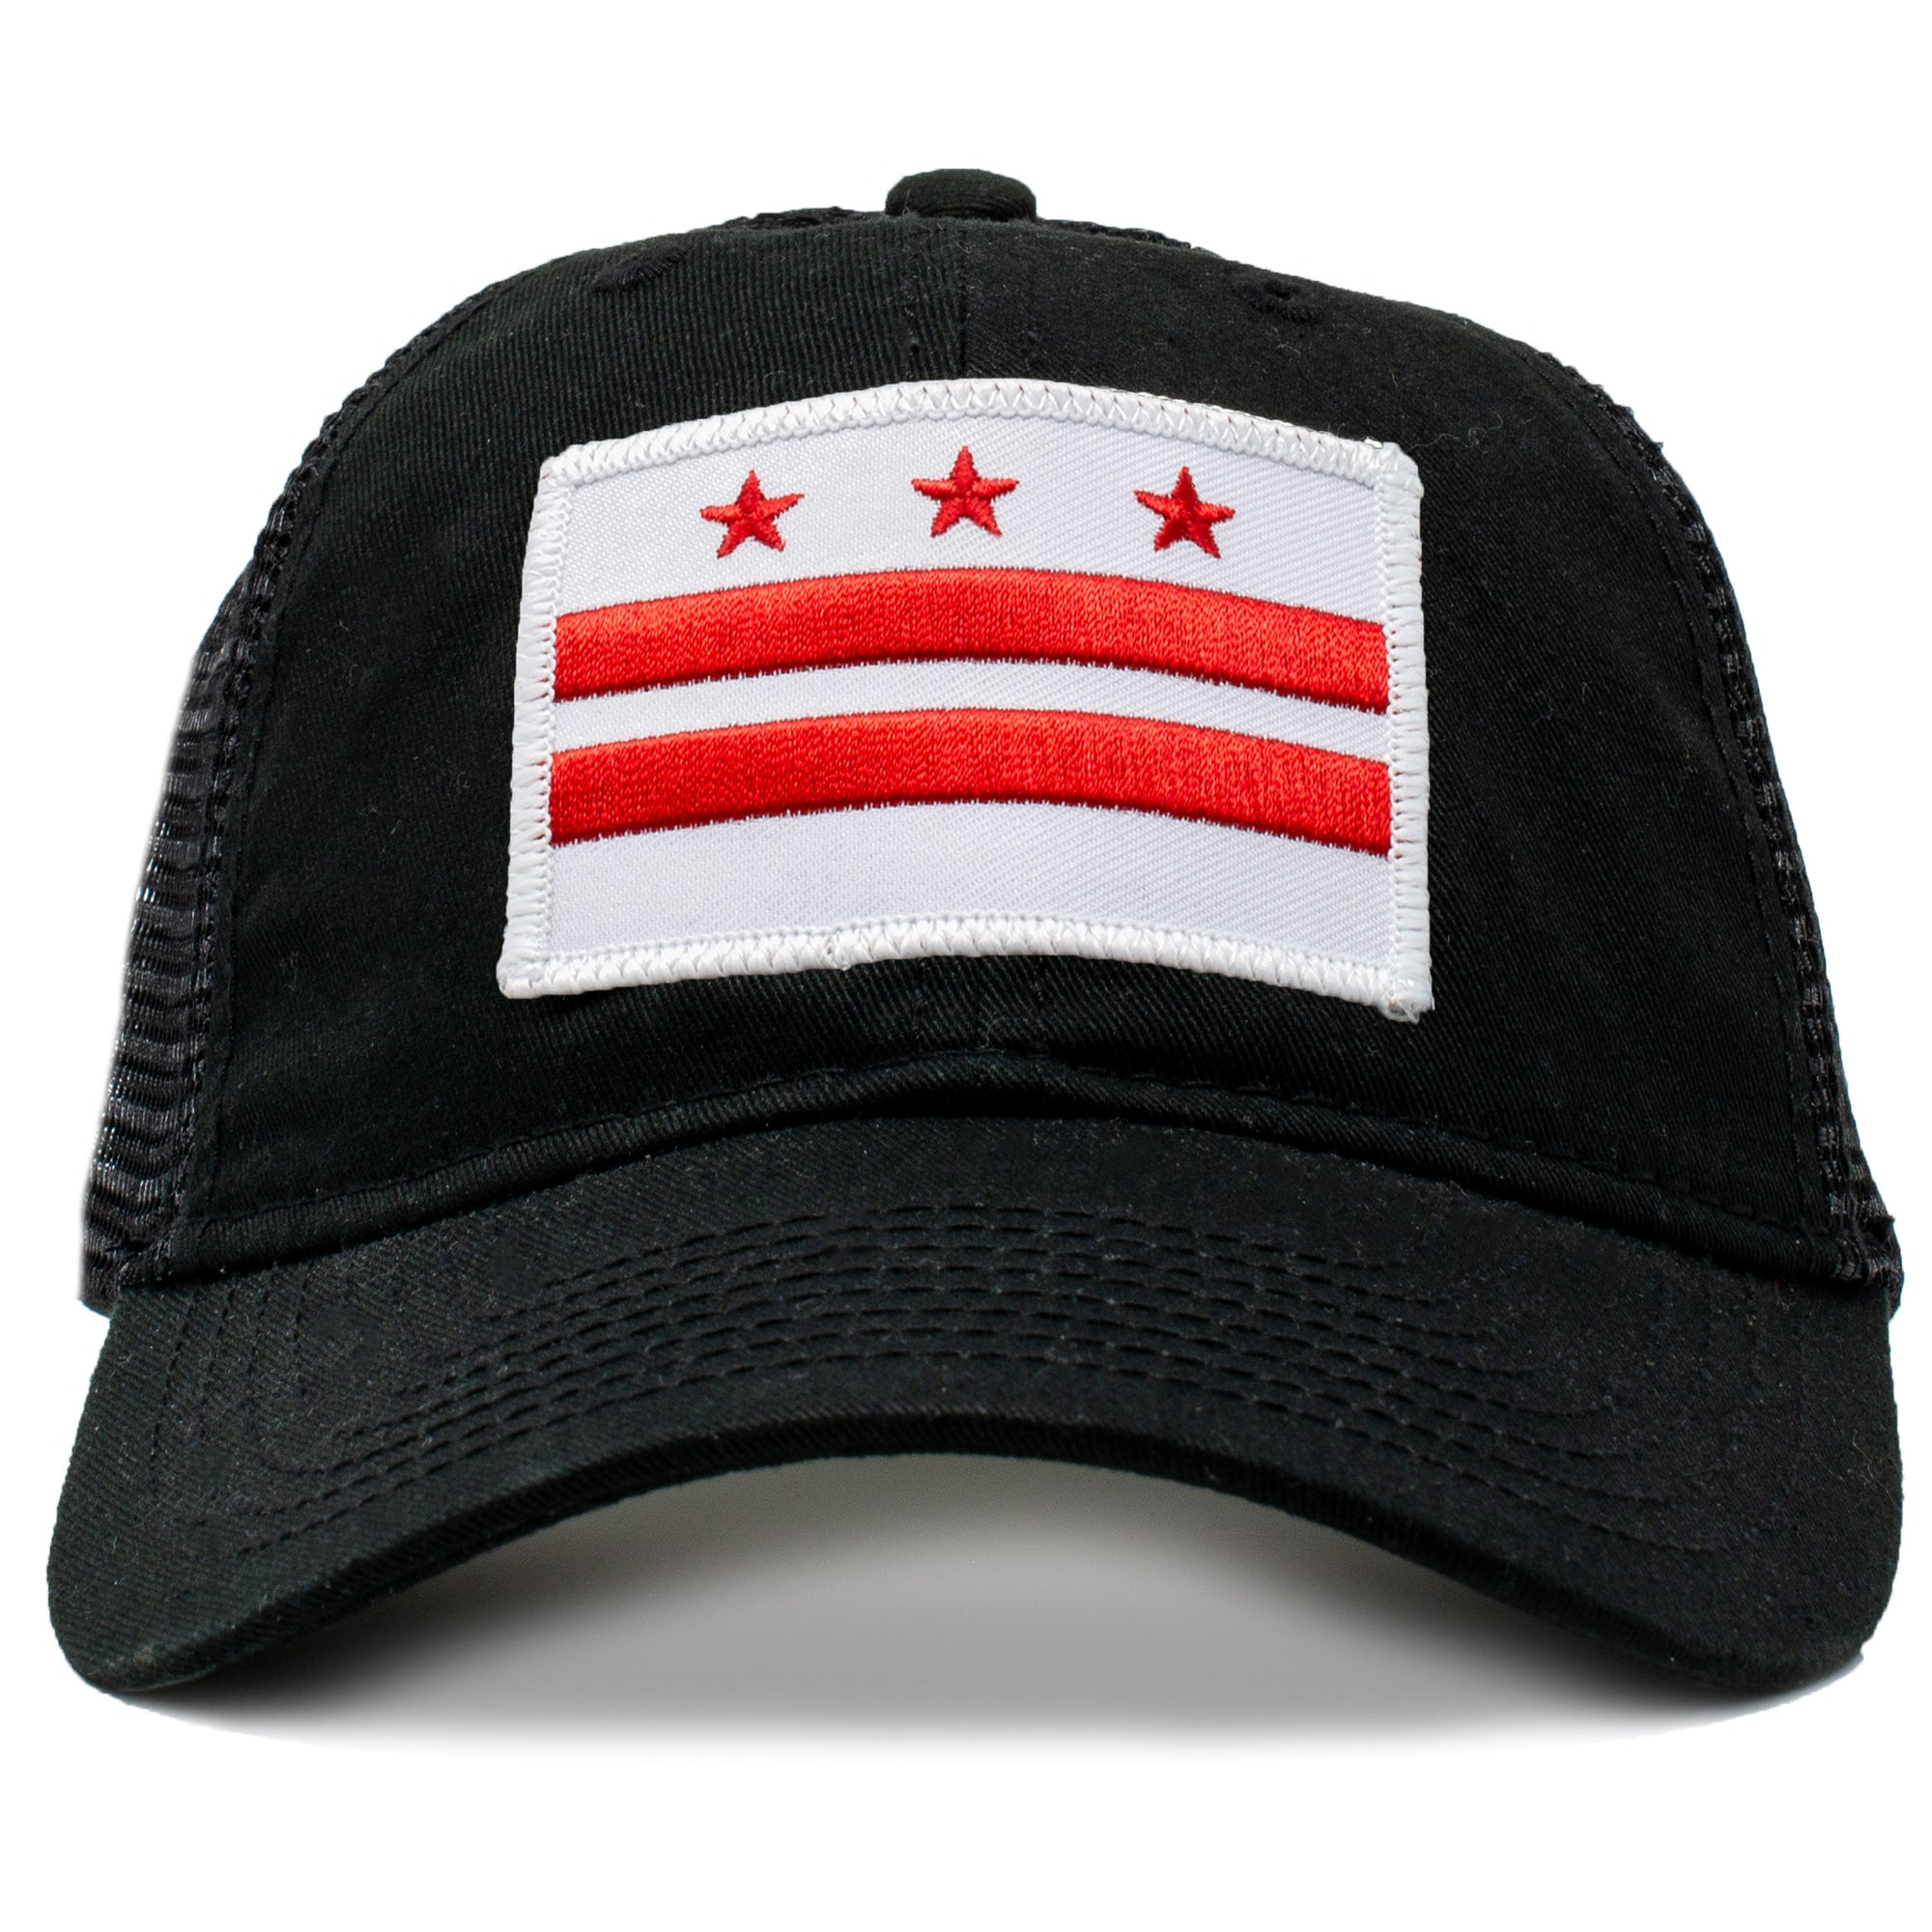 retro washington d.c.flag  baseball hat with embroidered patch